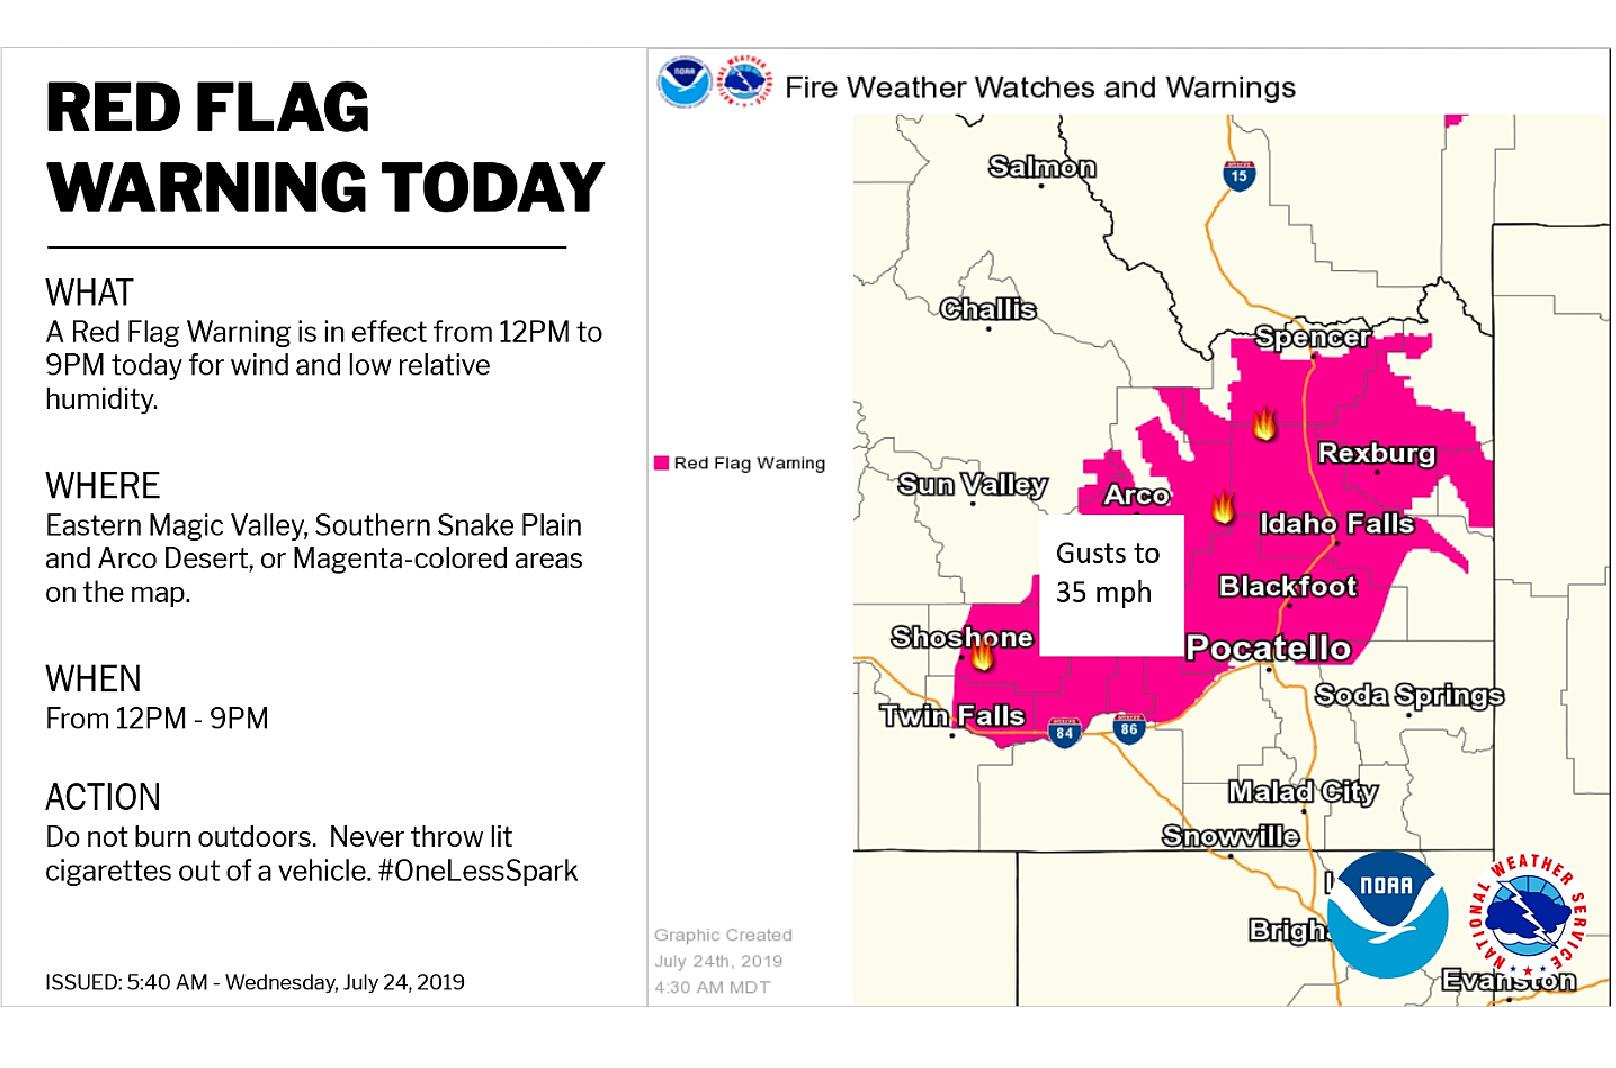 Red Flag Warning for Areas North of the Snake River